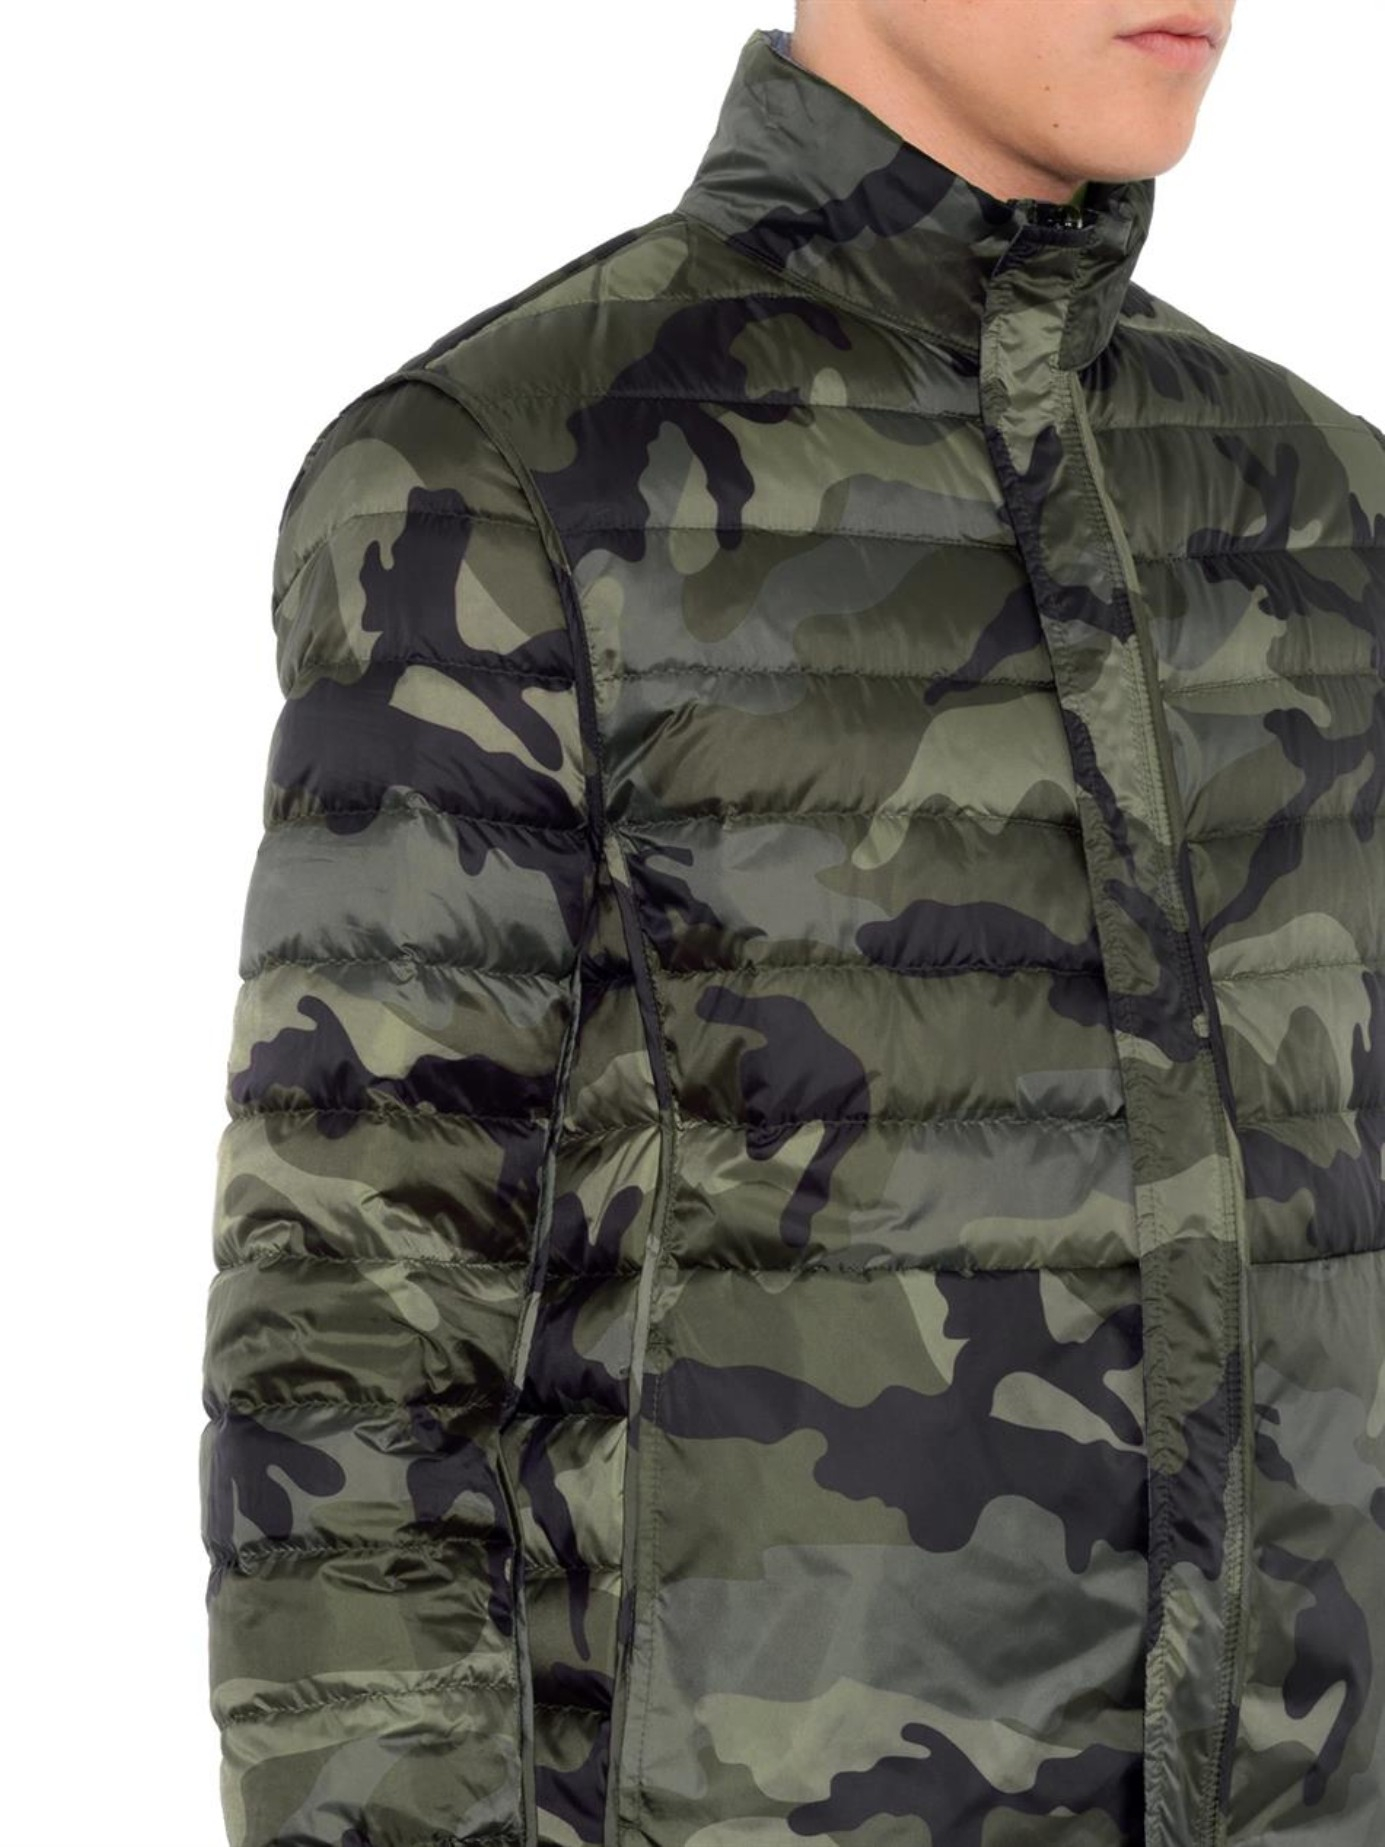 ef71fbd879e30 Valentino Reversible Camo-Print Down Jacket in Green for Men - Lyst